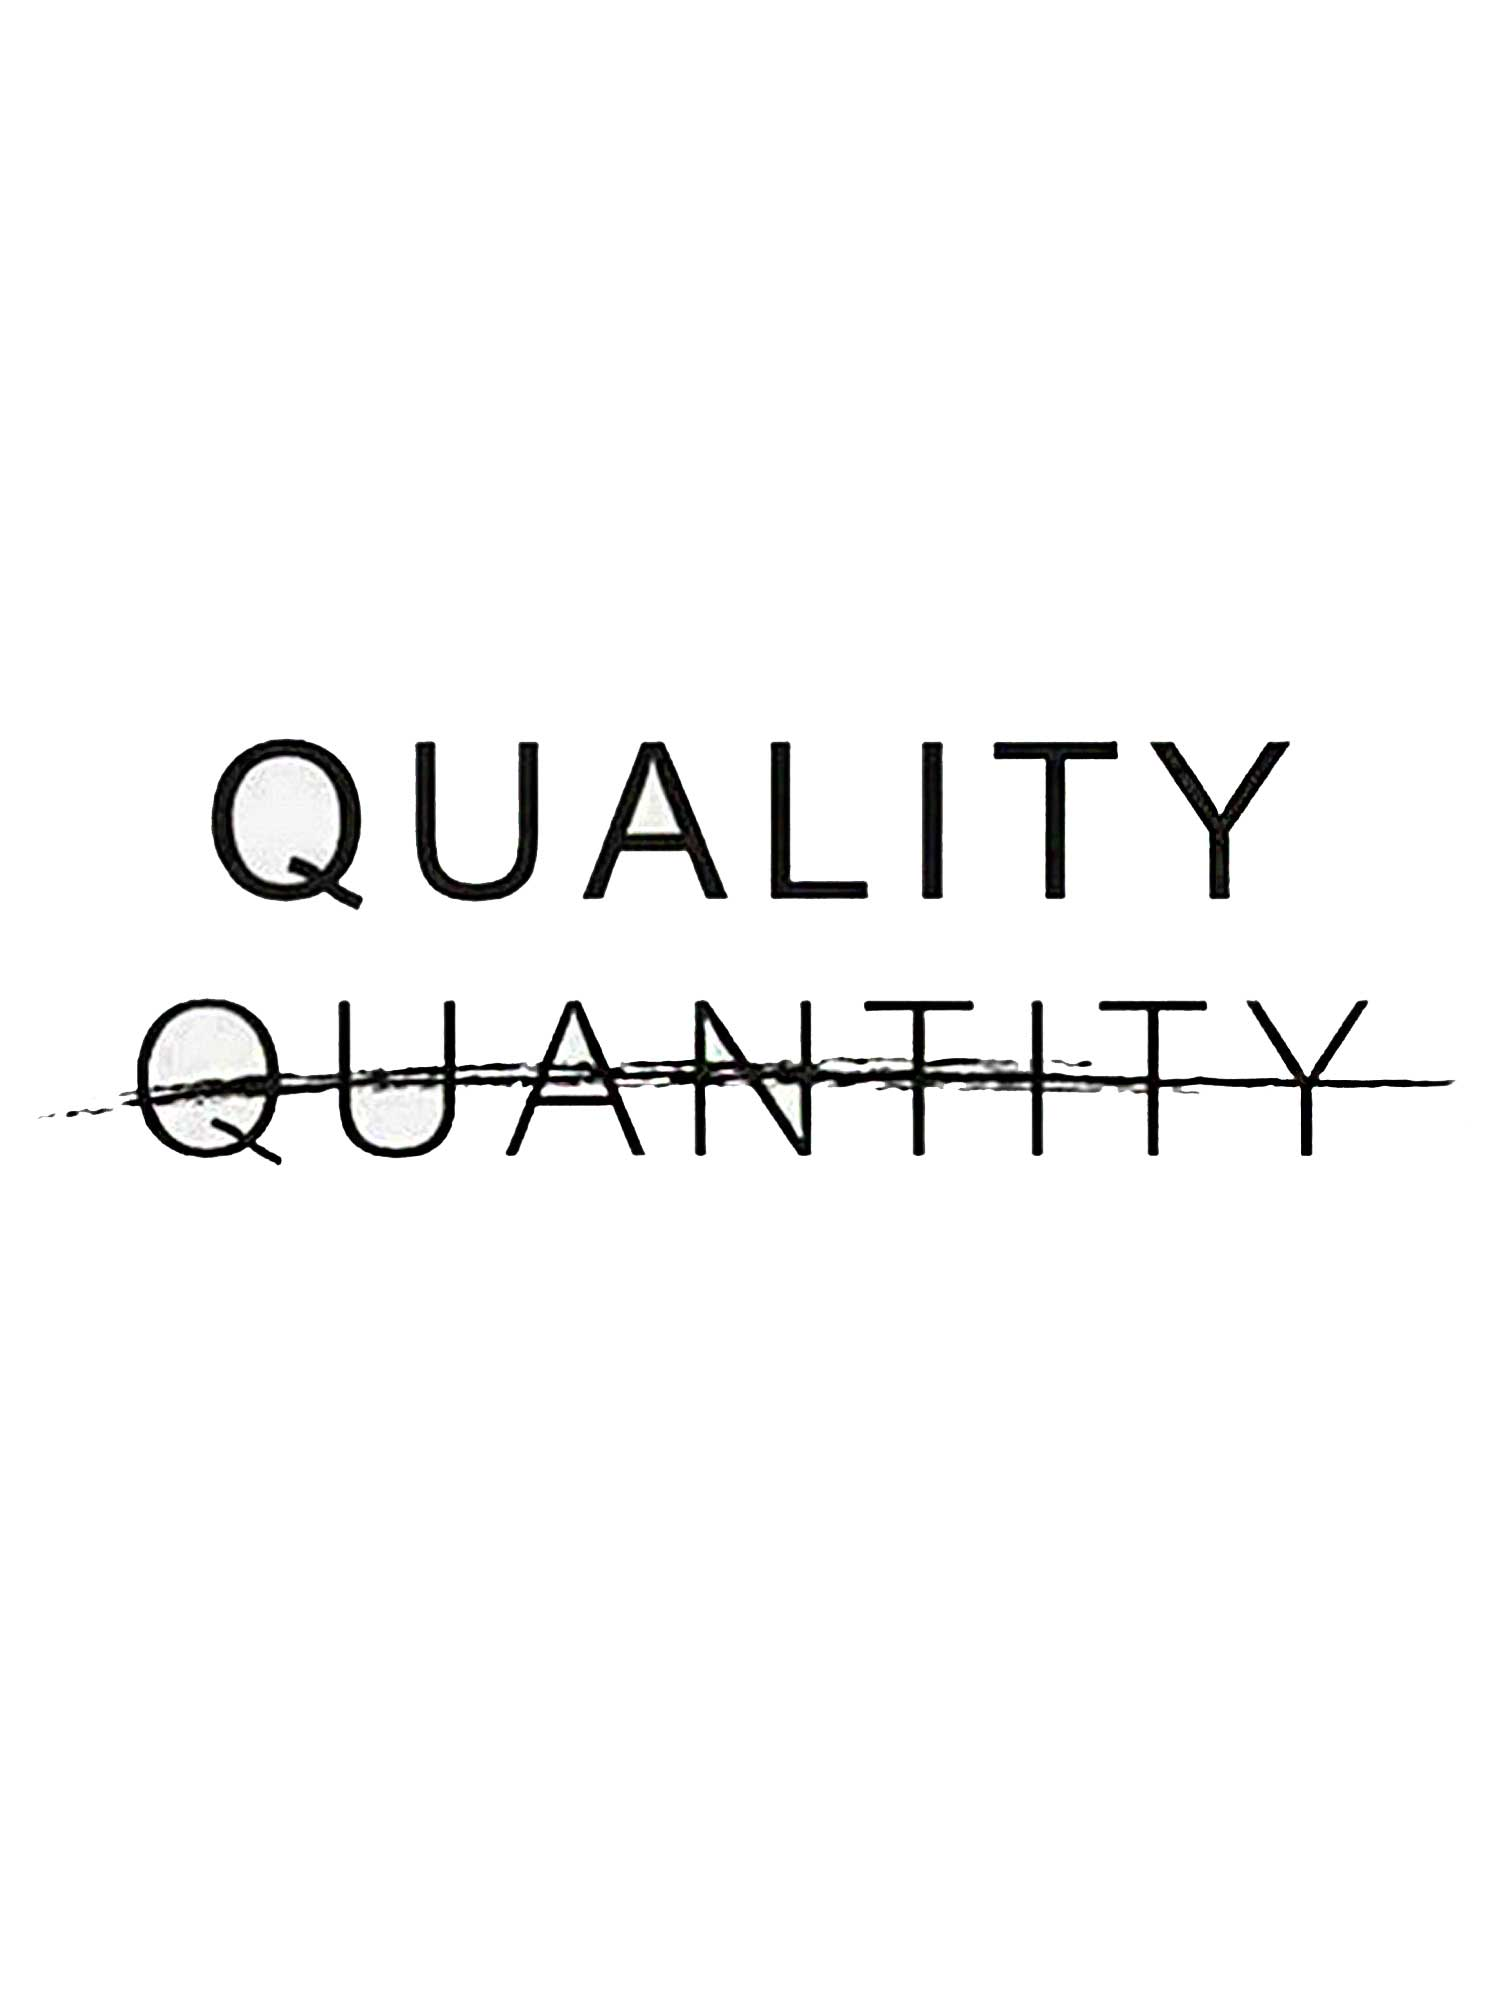 quality not quantity quote